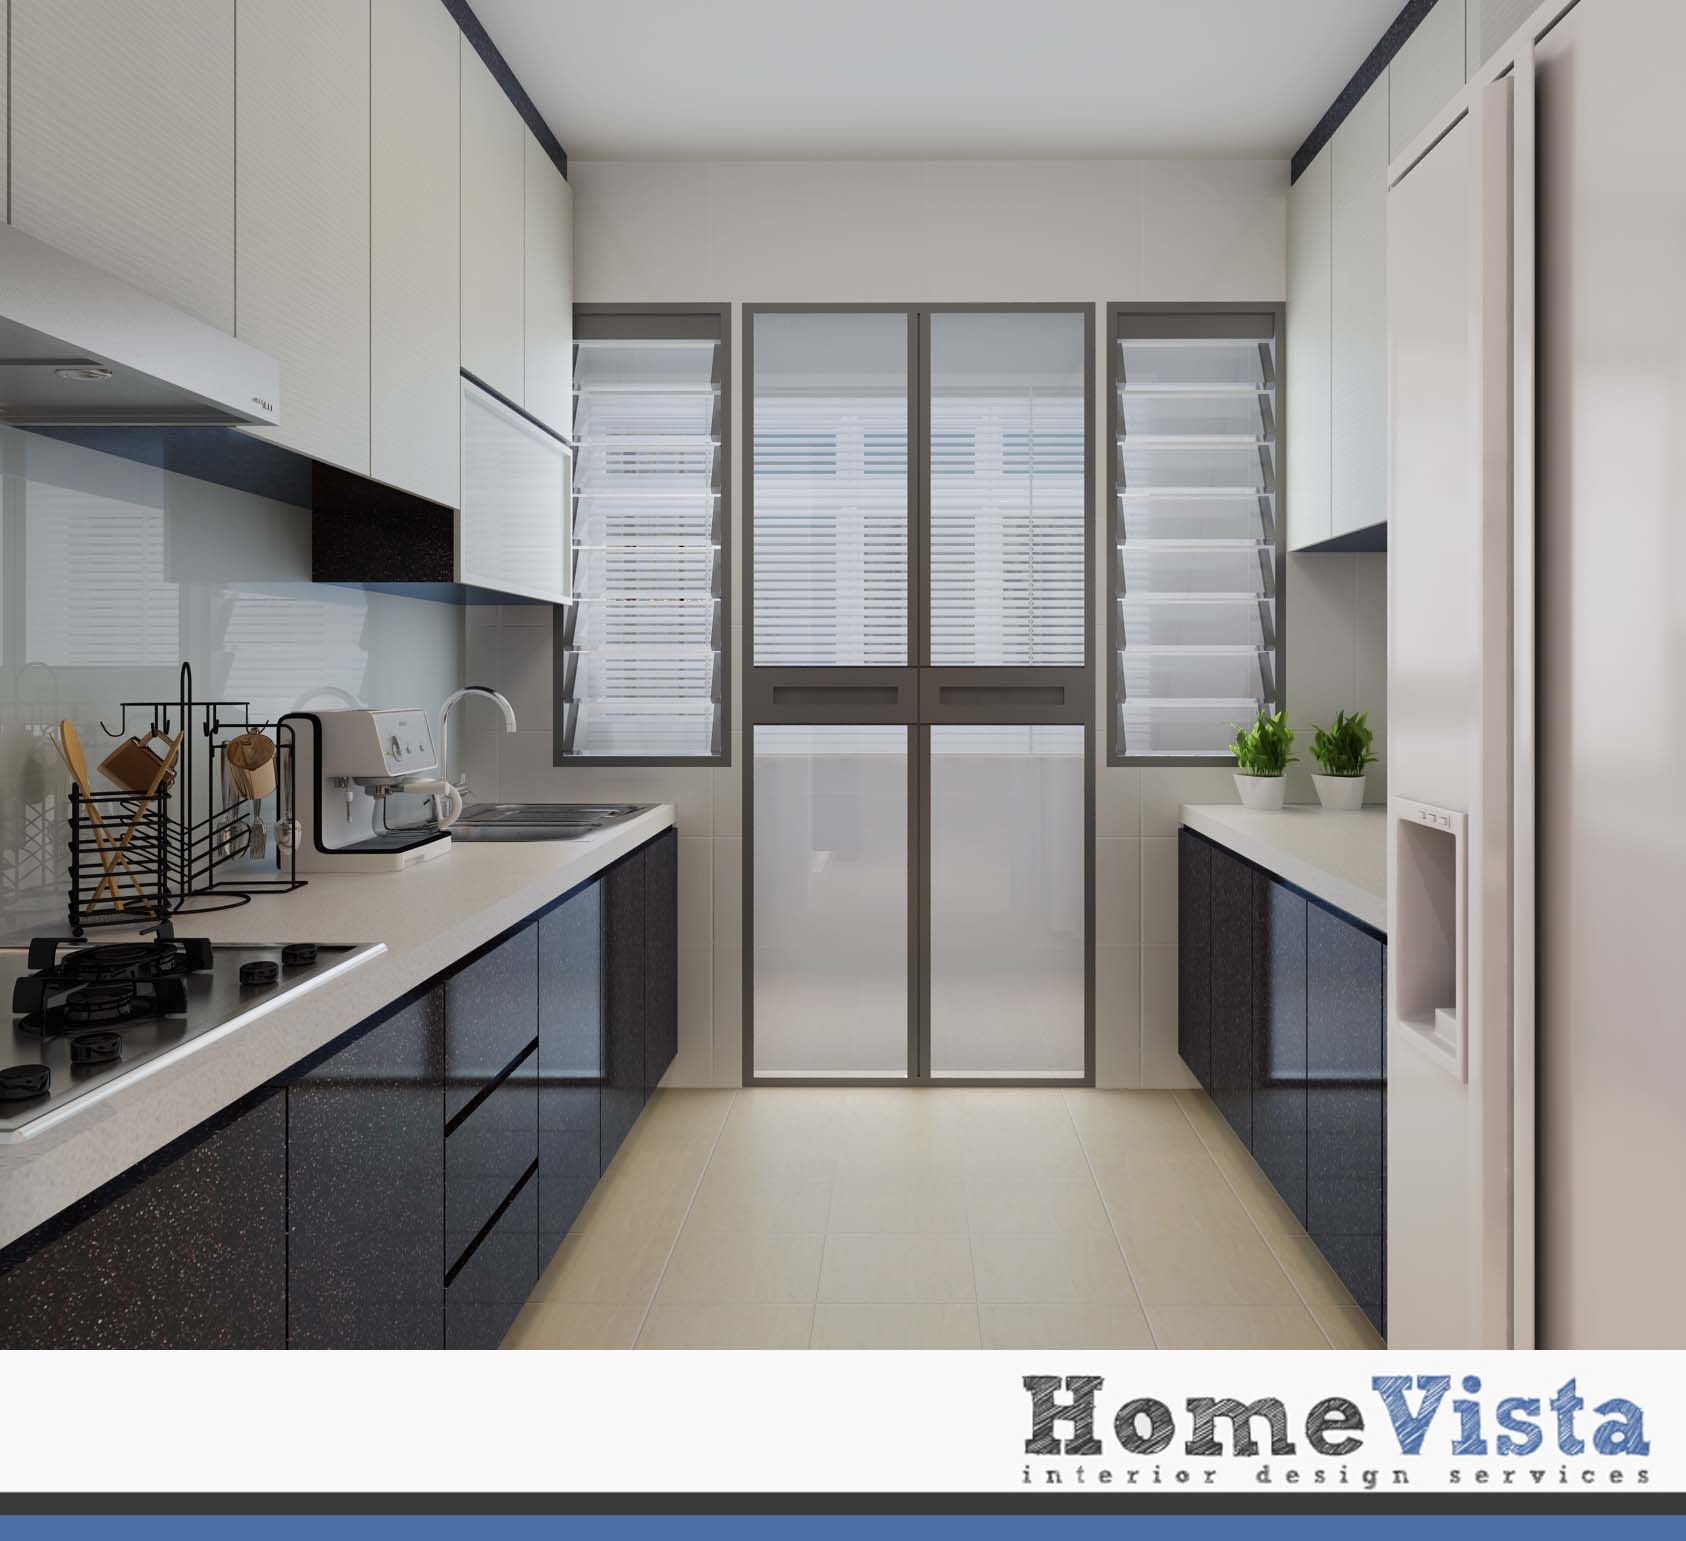 4 room bto yishun hdb bto homevista kitchen design for 3 room bto design ideas